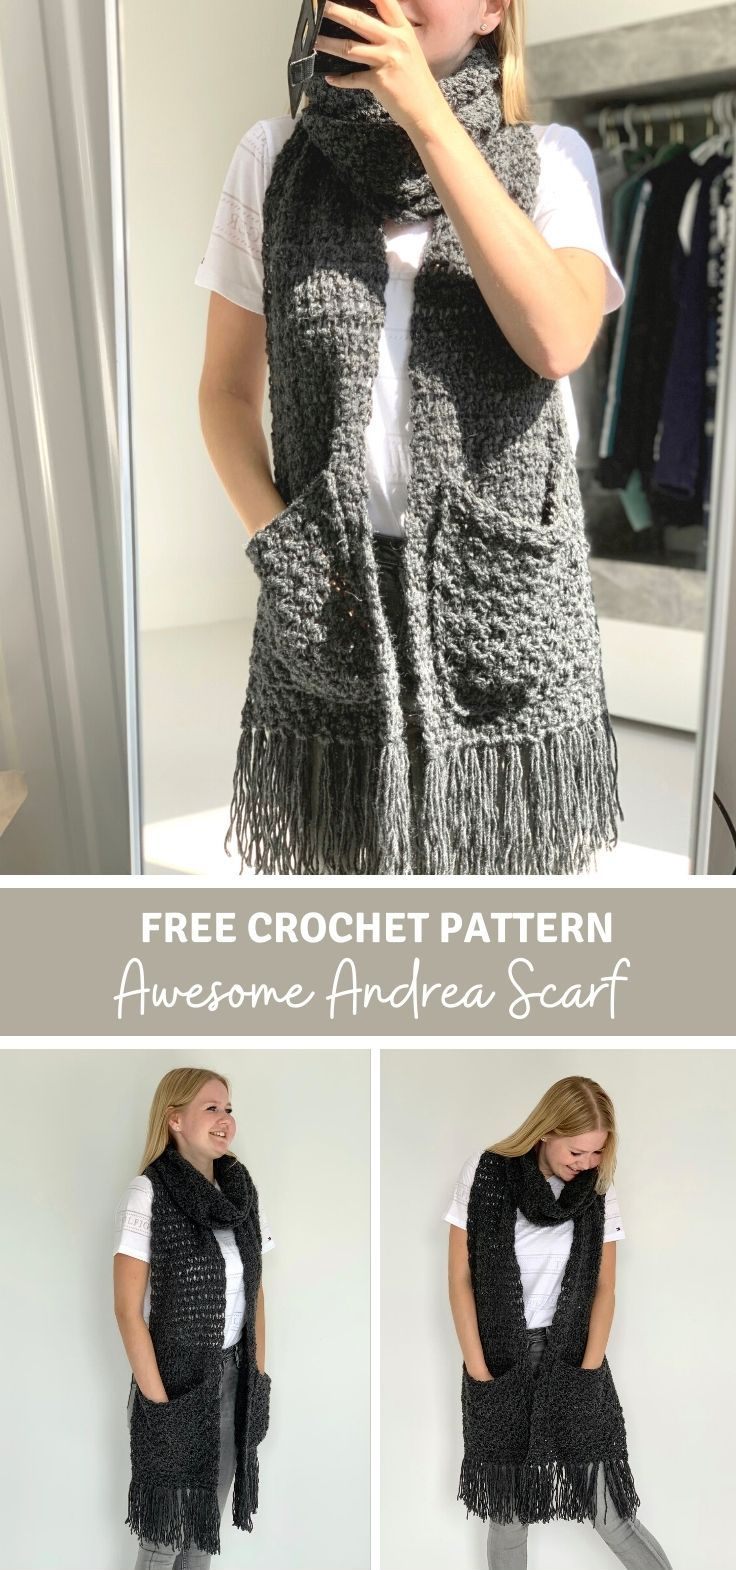 Awesome Andrea Scarf - free crochet scarf pattern with pockets- pinterest pin